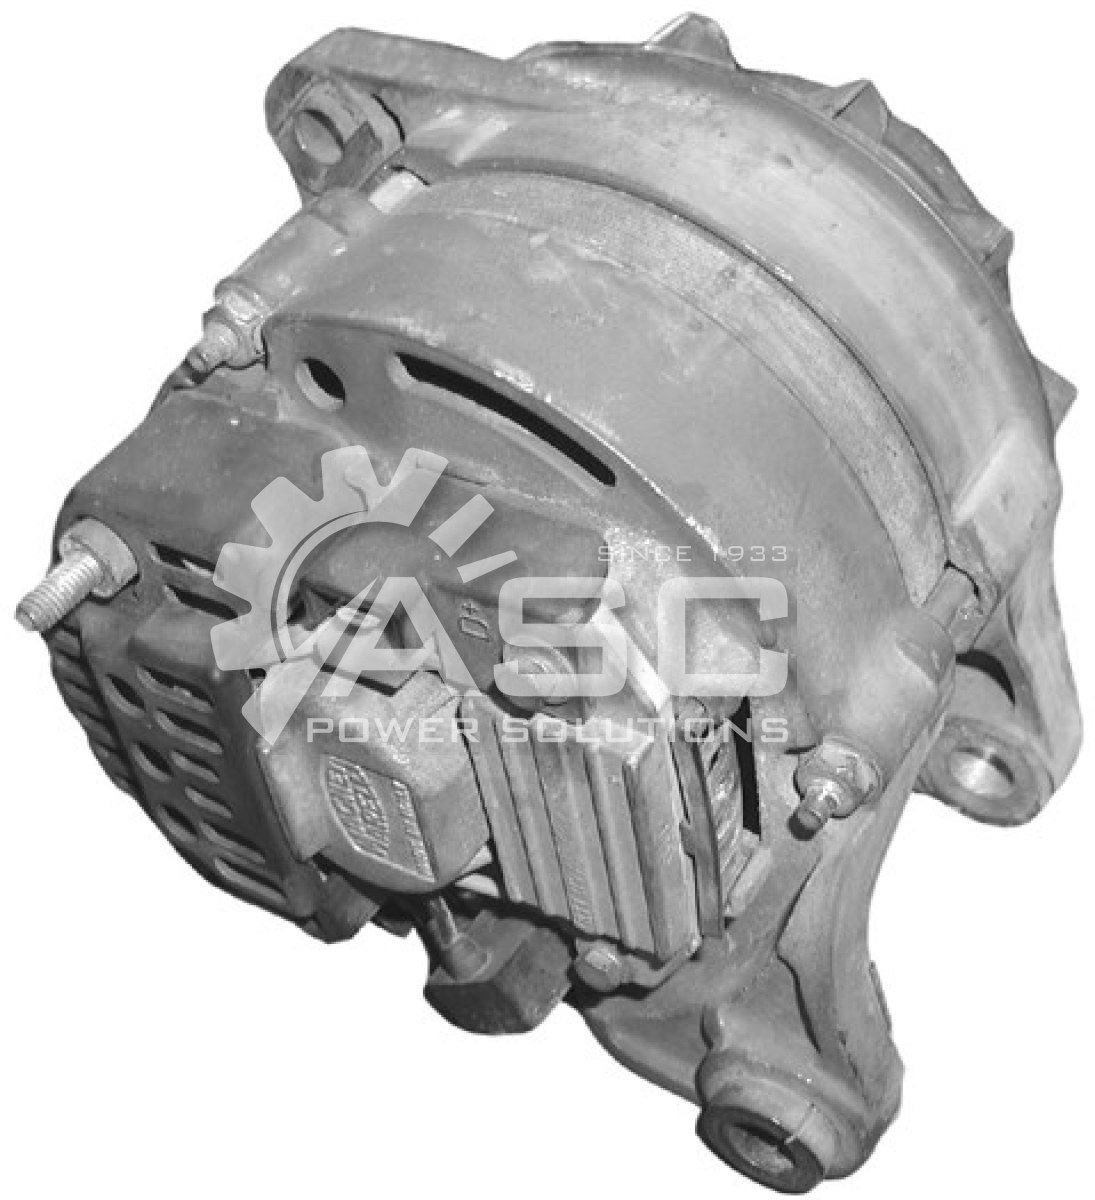 A411047_ASC, Alternator, 12V, 65 Amp, IR, Marelli, Reman